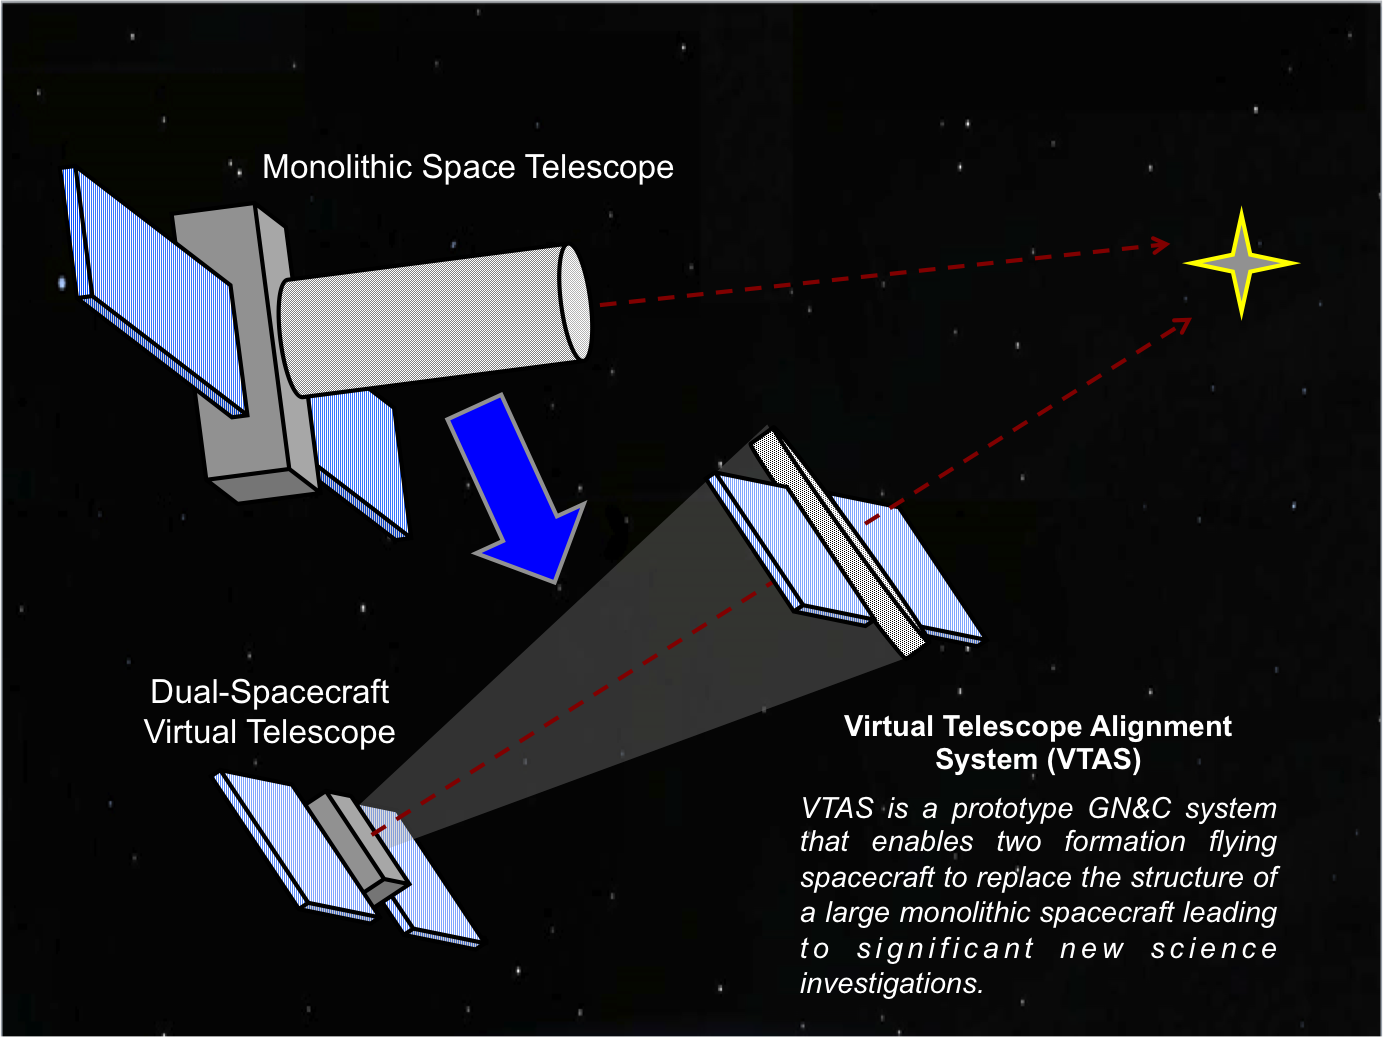 VTAS enables distributed space telescopes